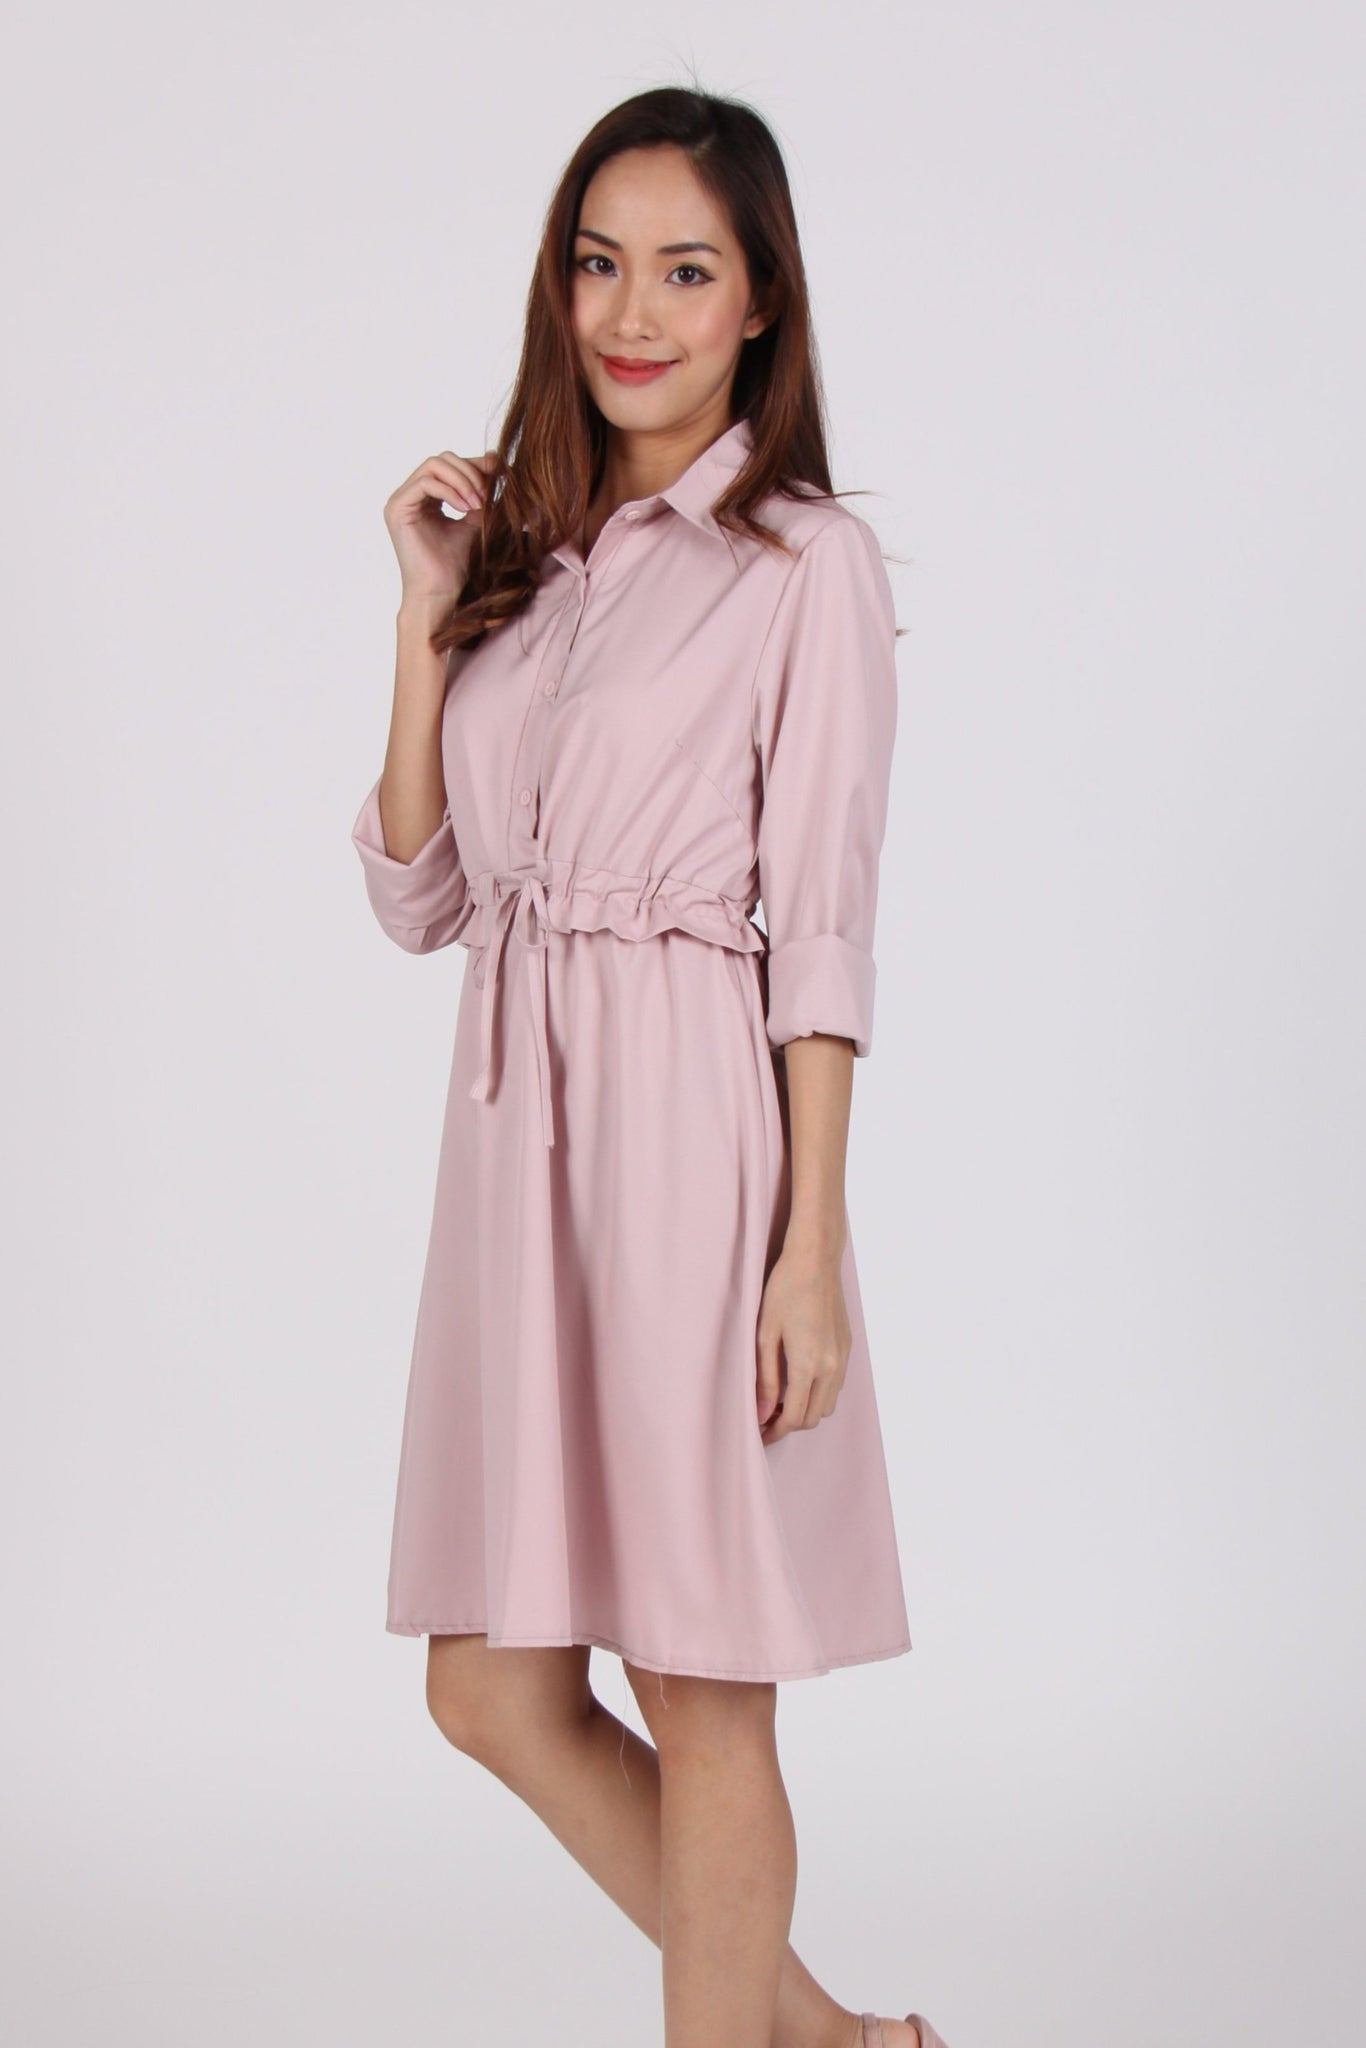 Collared Long Sleeve Waist Tie Shirt Dress in Pink